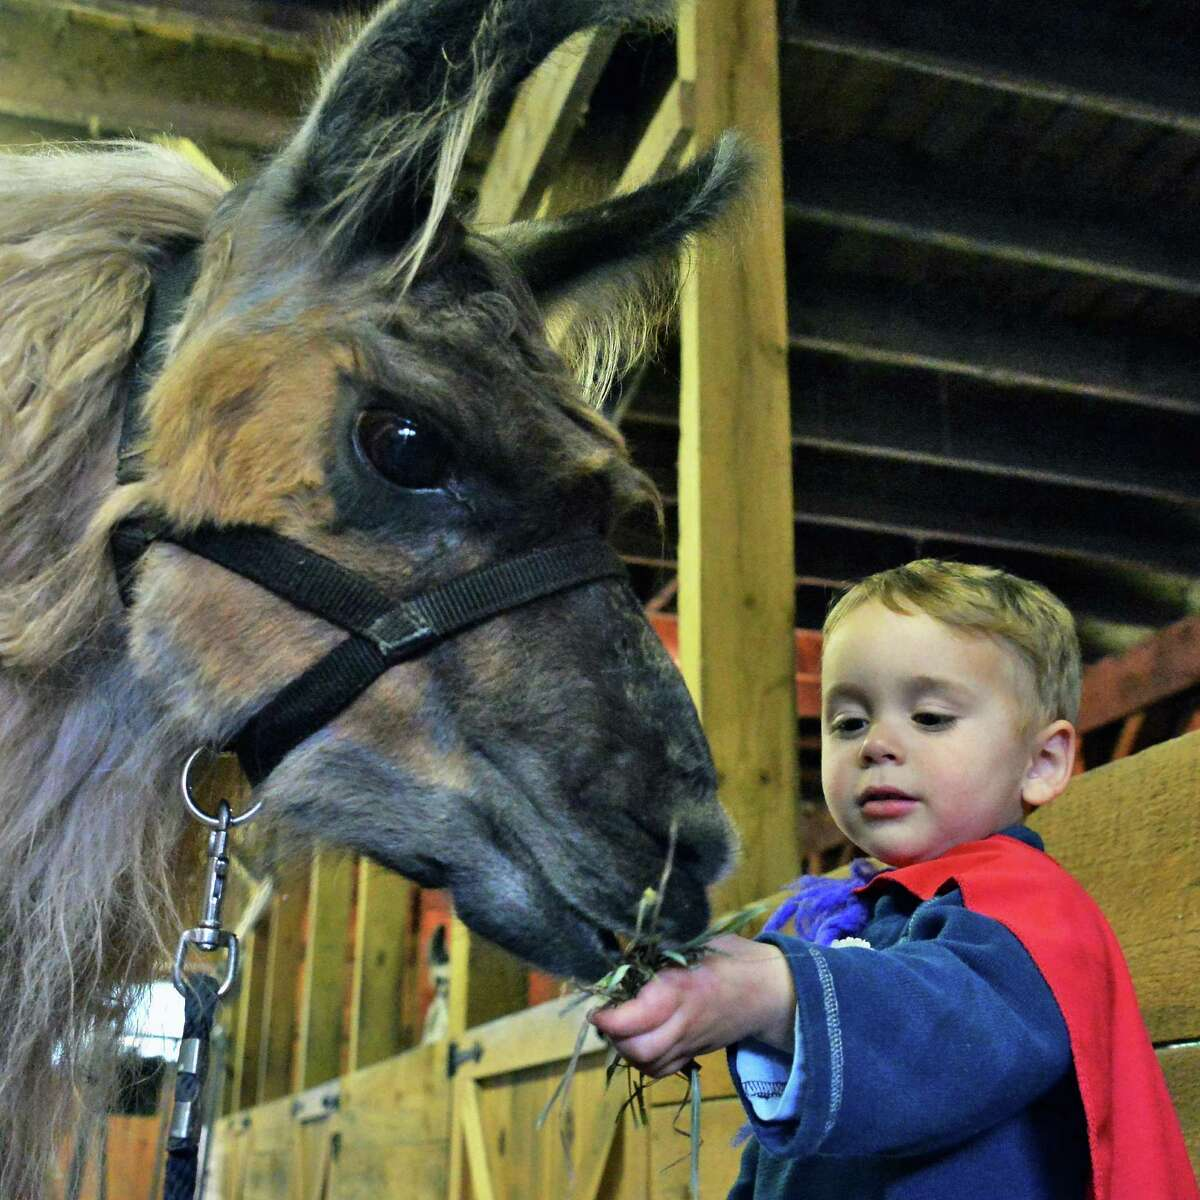 Two-year-old Connor Flynn of Altamont feeds a llama during a Kids Care Preschool field trip to Wunsapana Farm Friday Oct. 9, 2015 in Altamont, NY. (John Carl D'Annibale / Times Union)